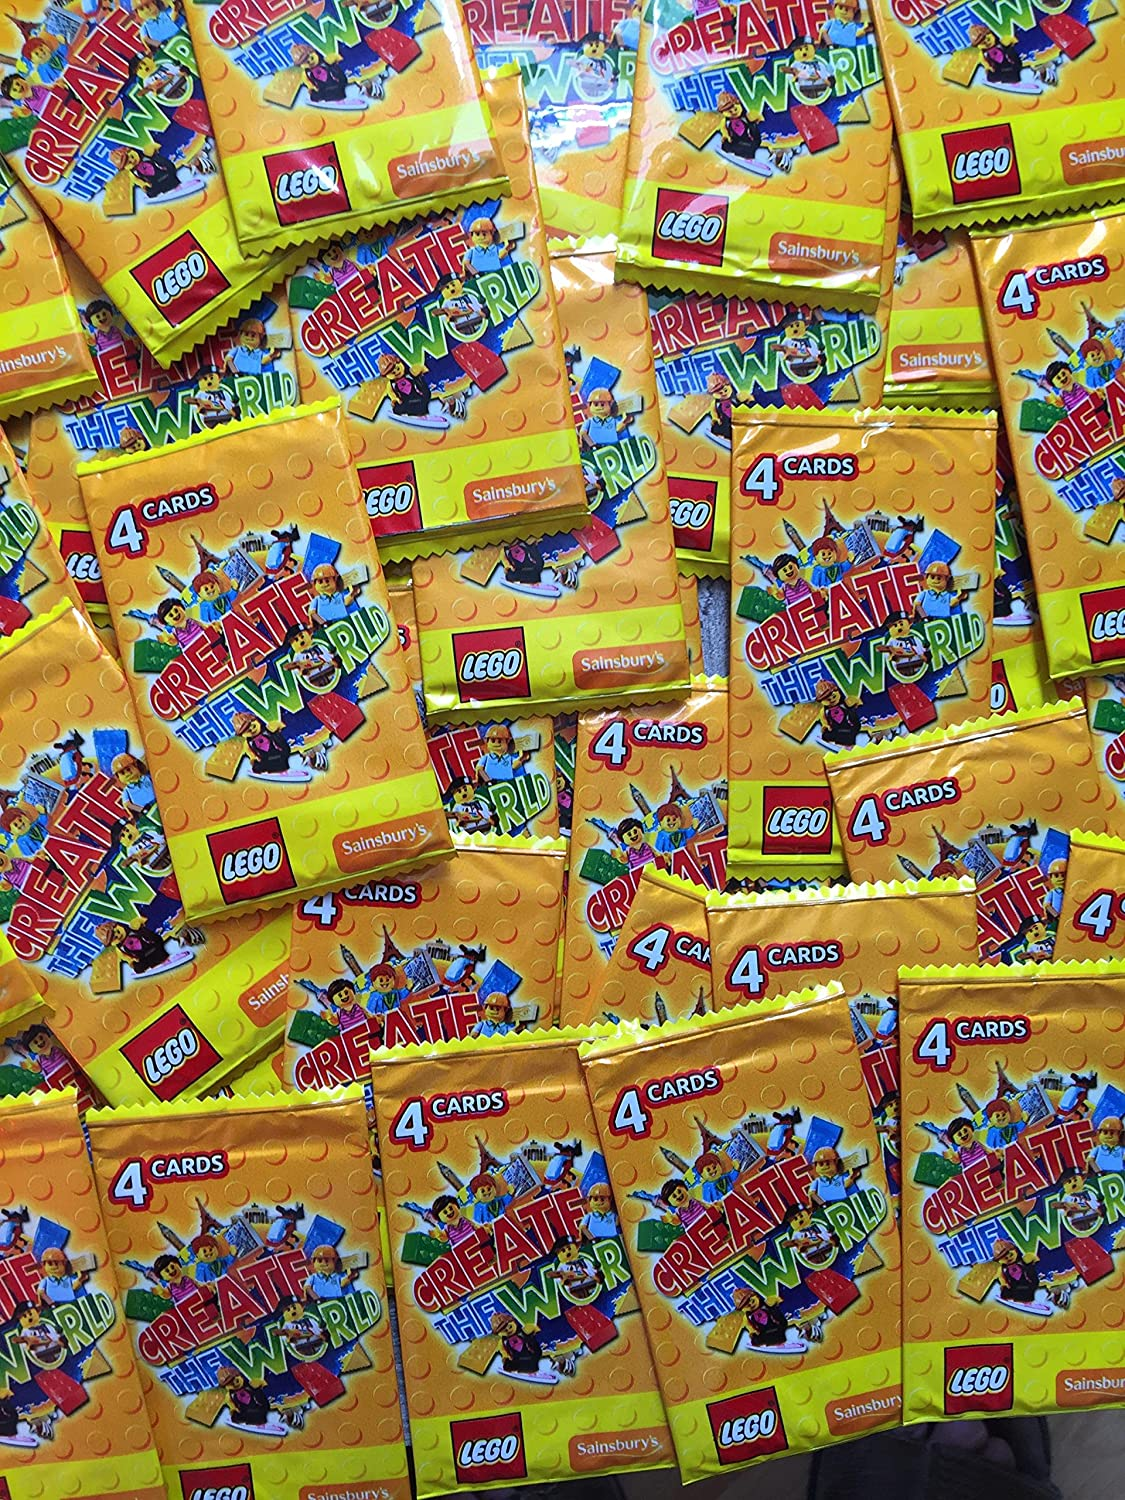 200 Cards 50 Packs of Sainsburys Lego Cards 2018 Incredible Inventions...NEW!